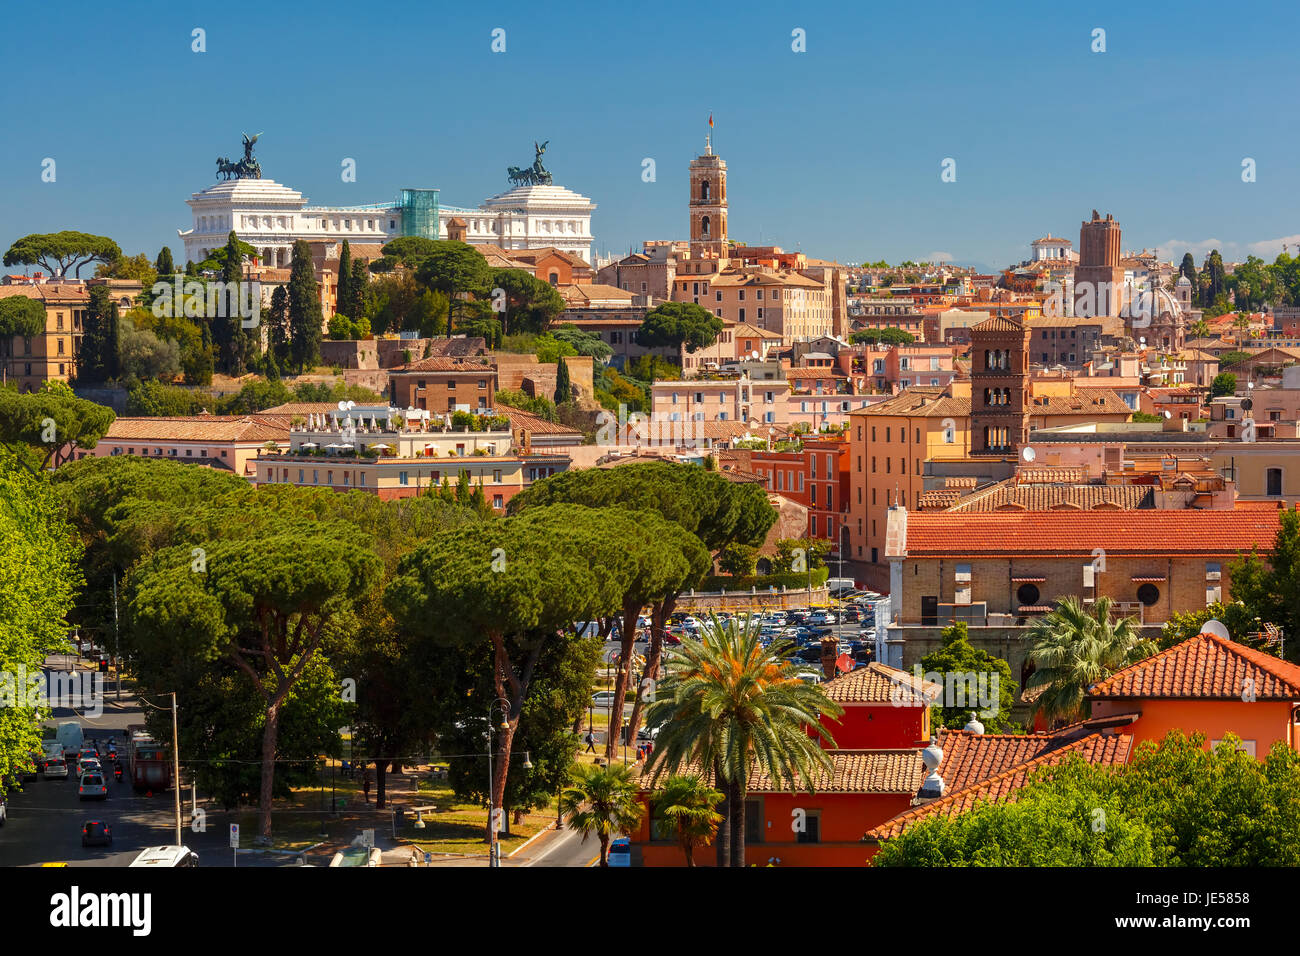 Aerial view of Rome, Italy - Stock Image